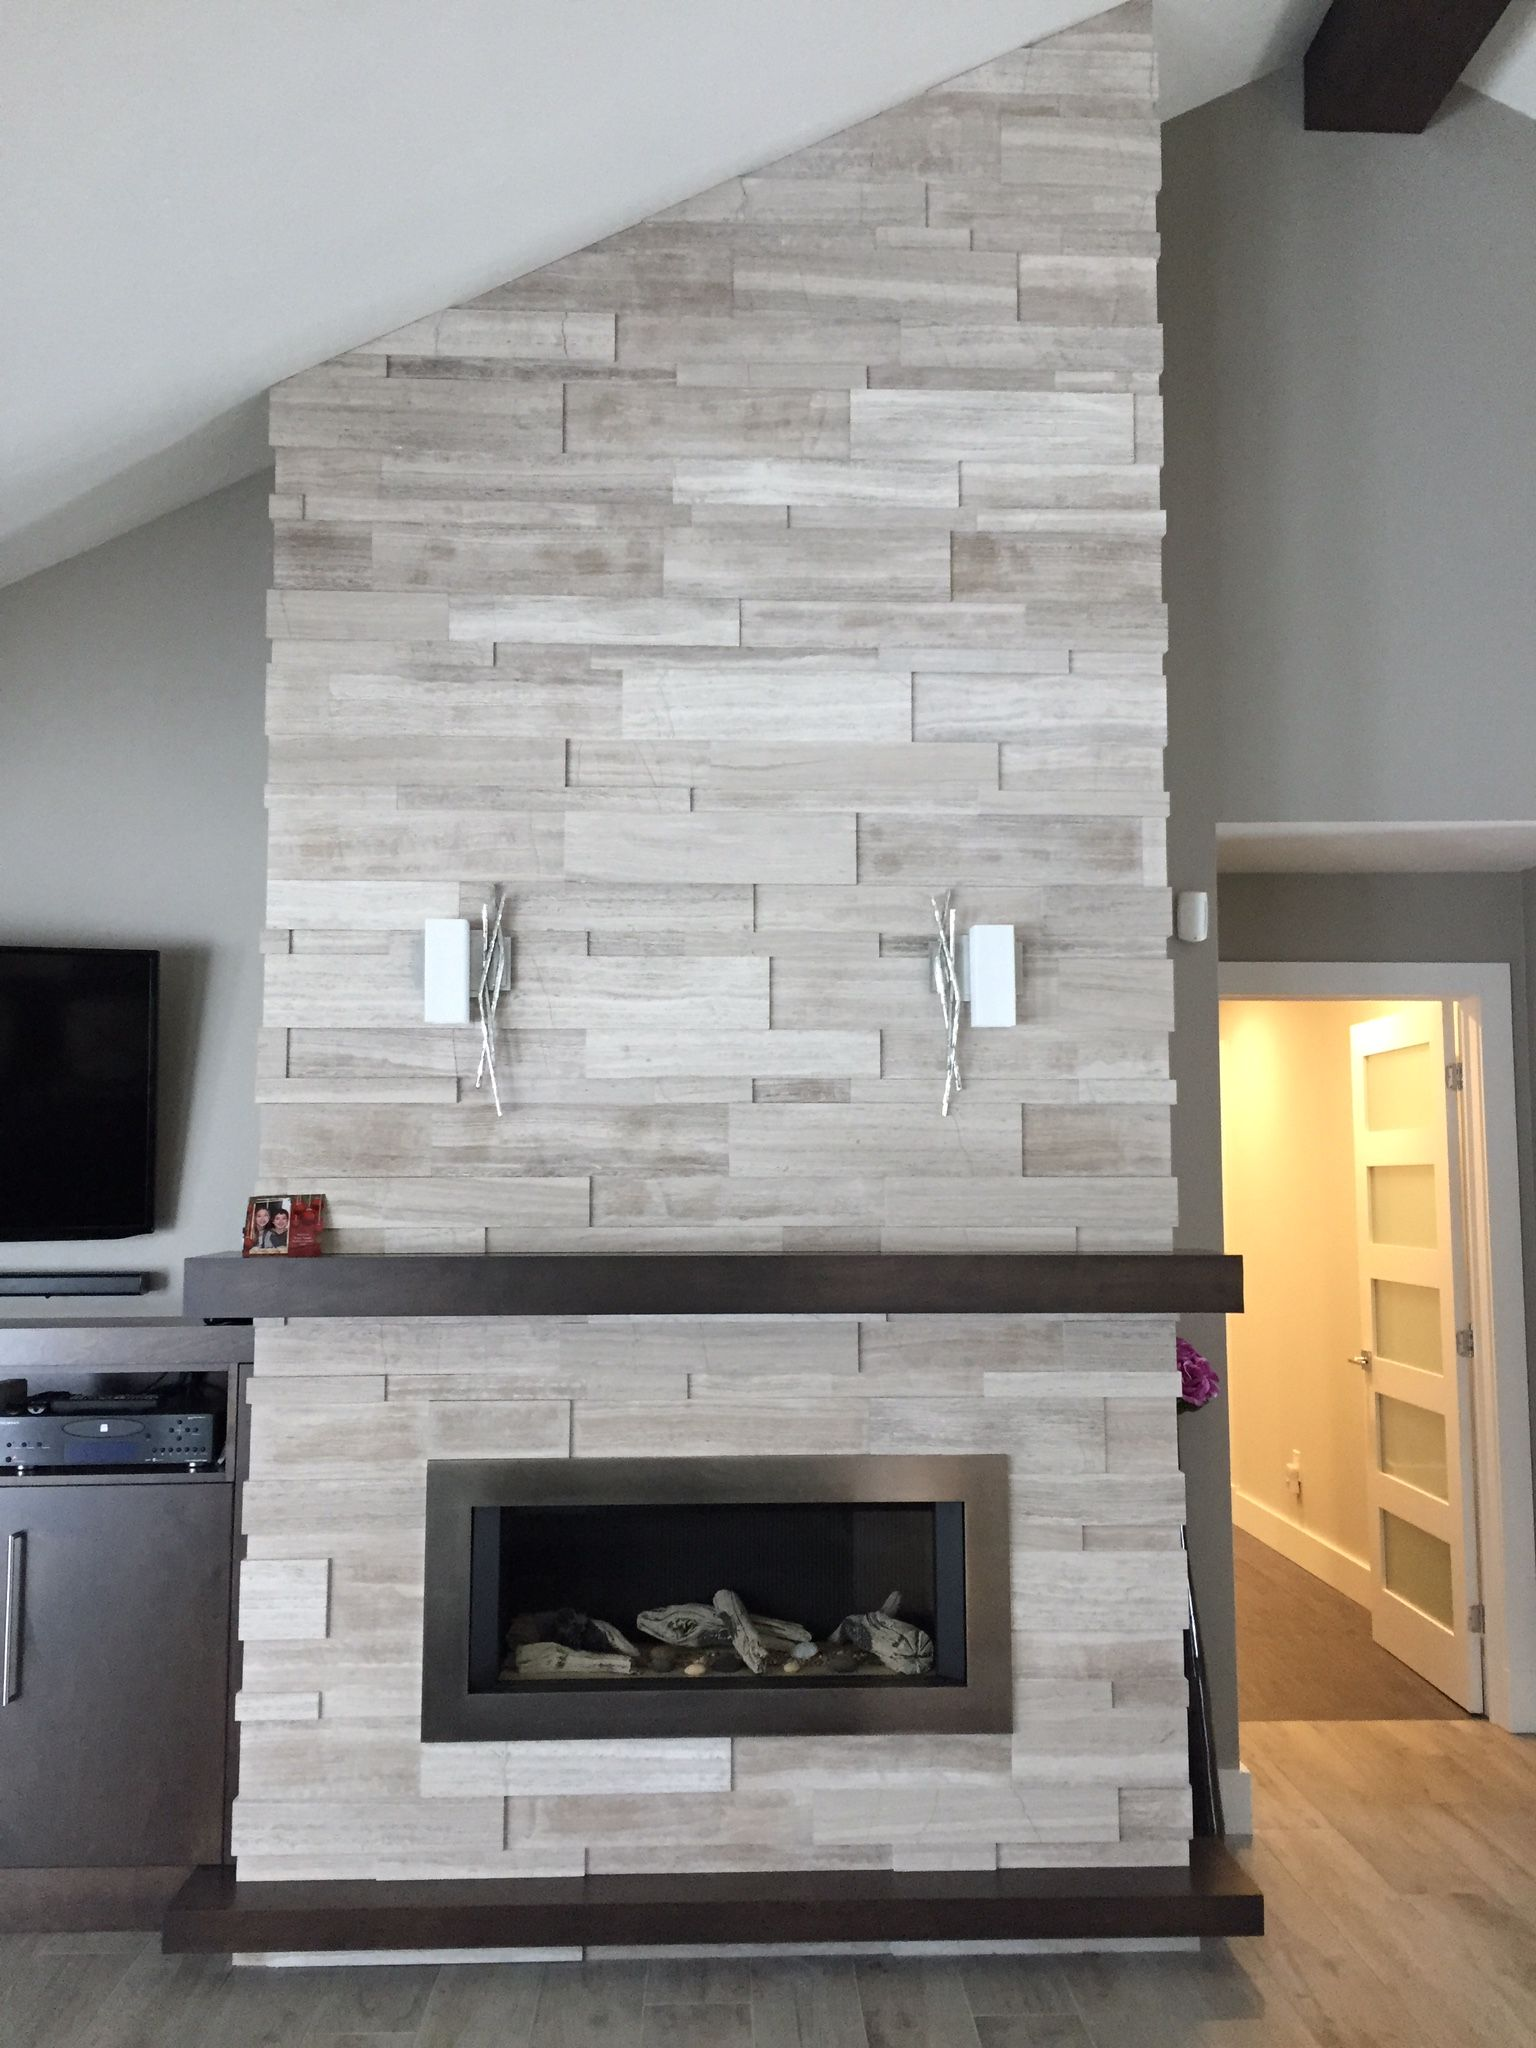 New Fireplace Install By Dominion Tile Ft Erthcoverings Large